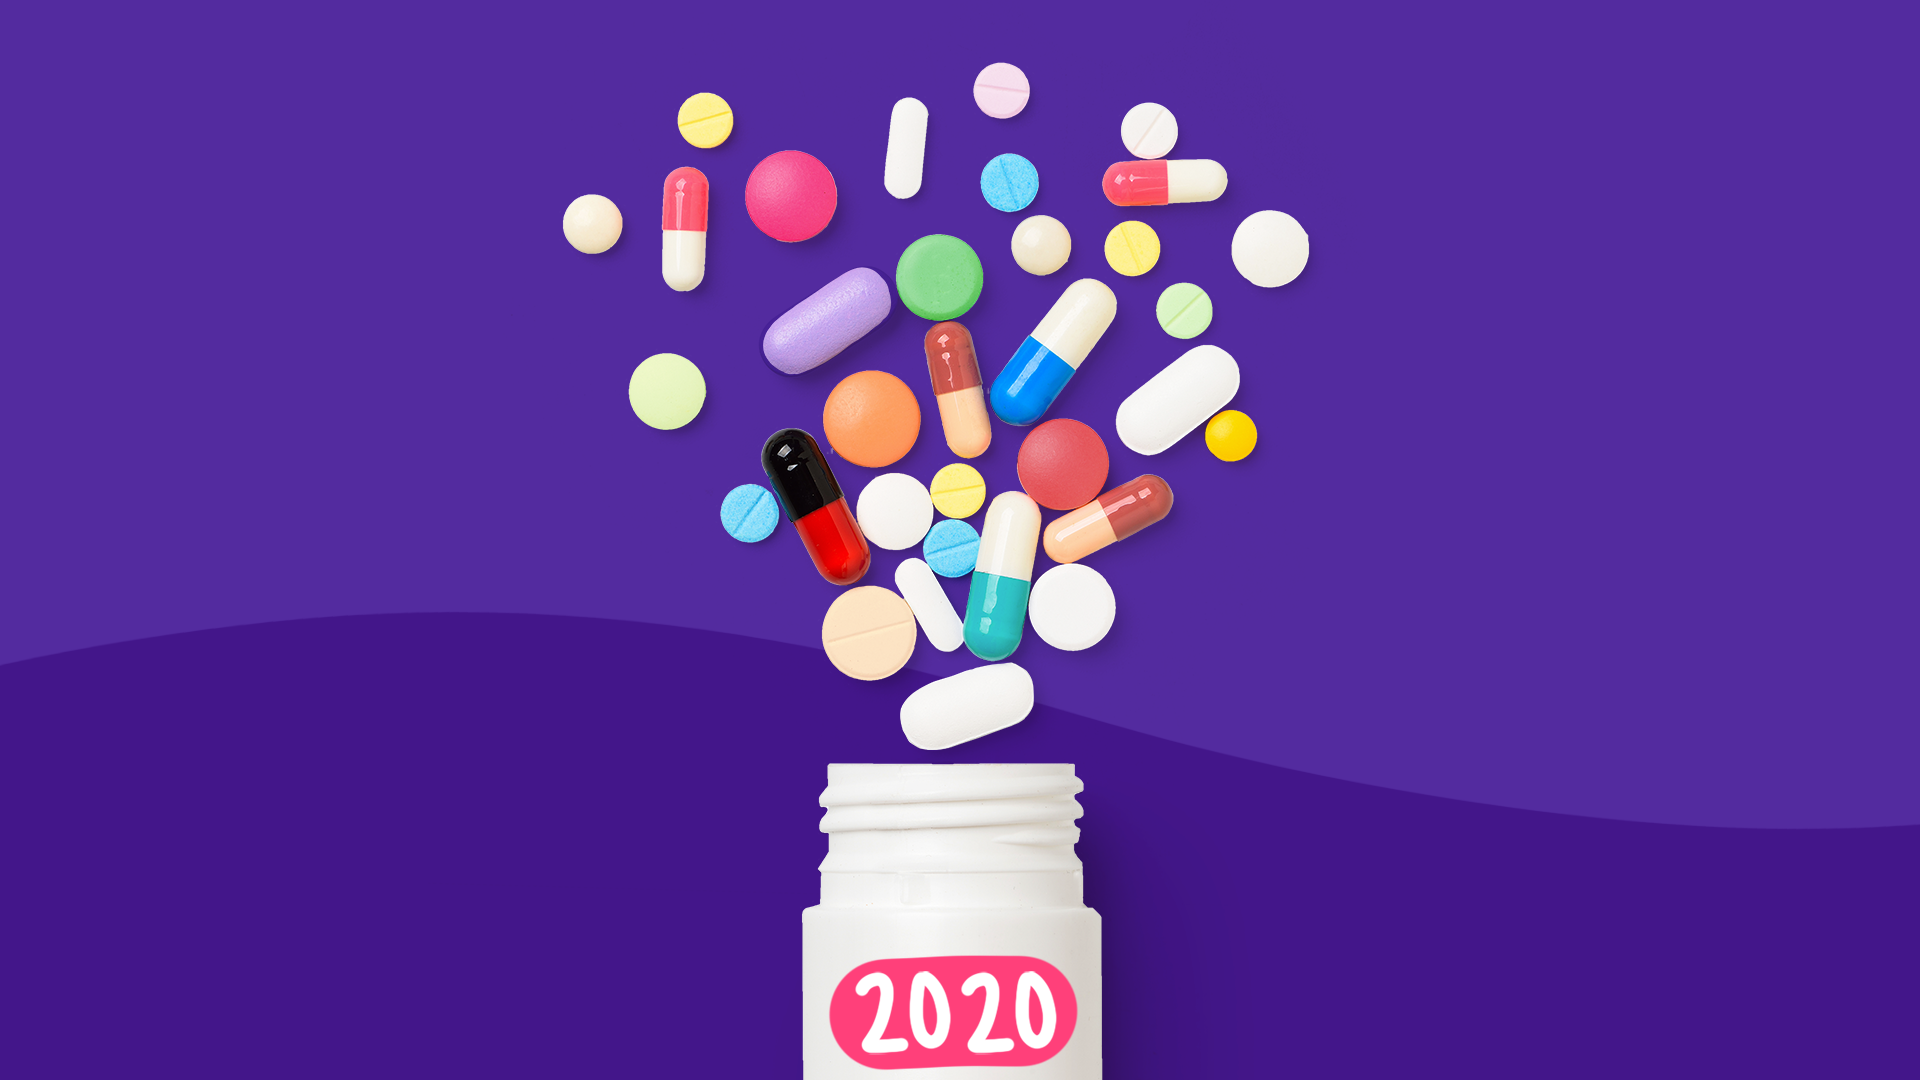 Learn about 5 new drugs coming in 2020